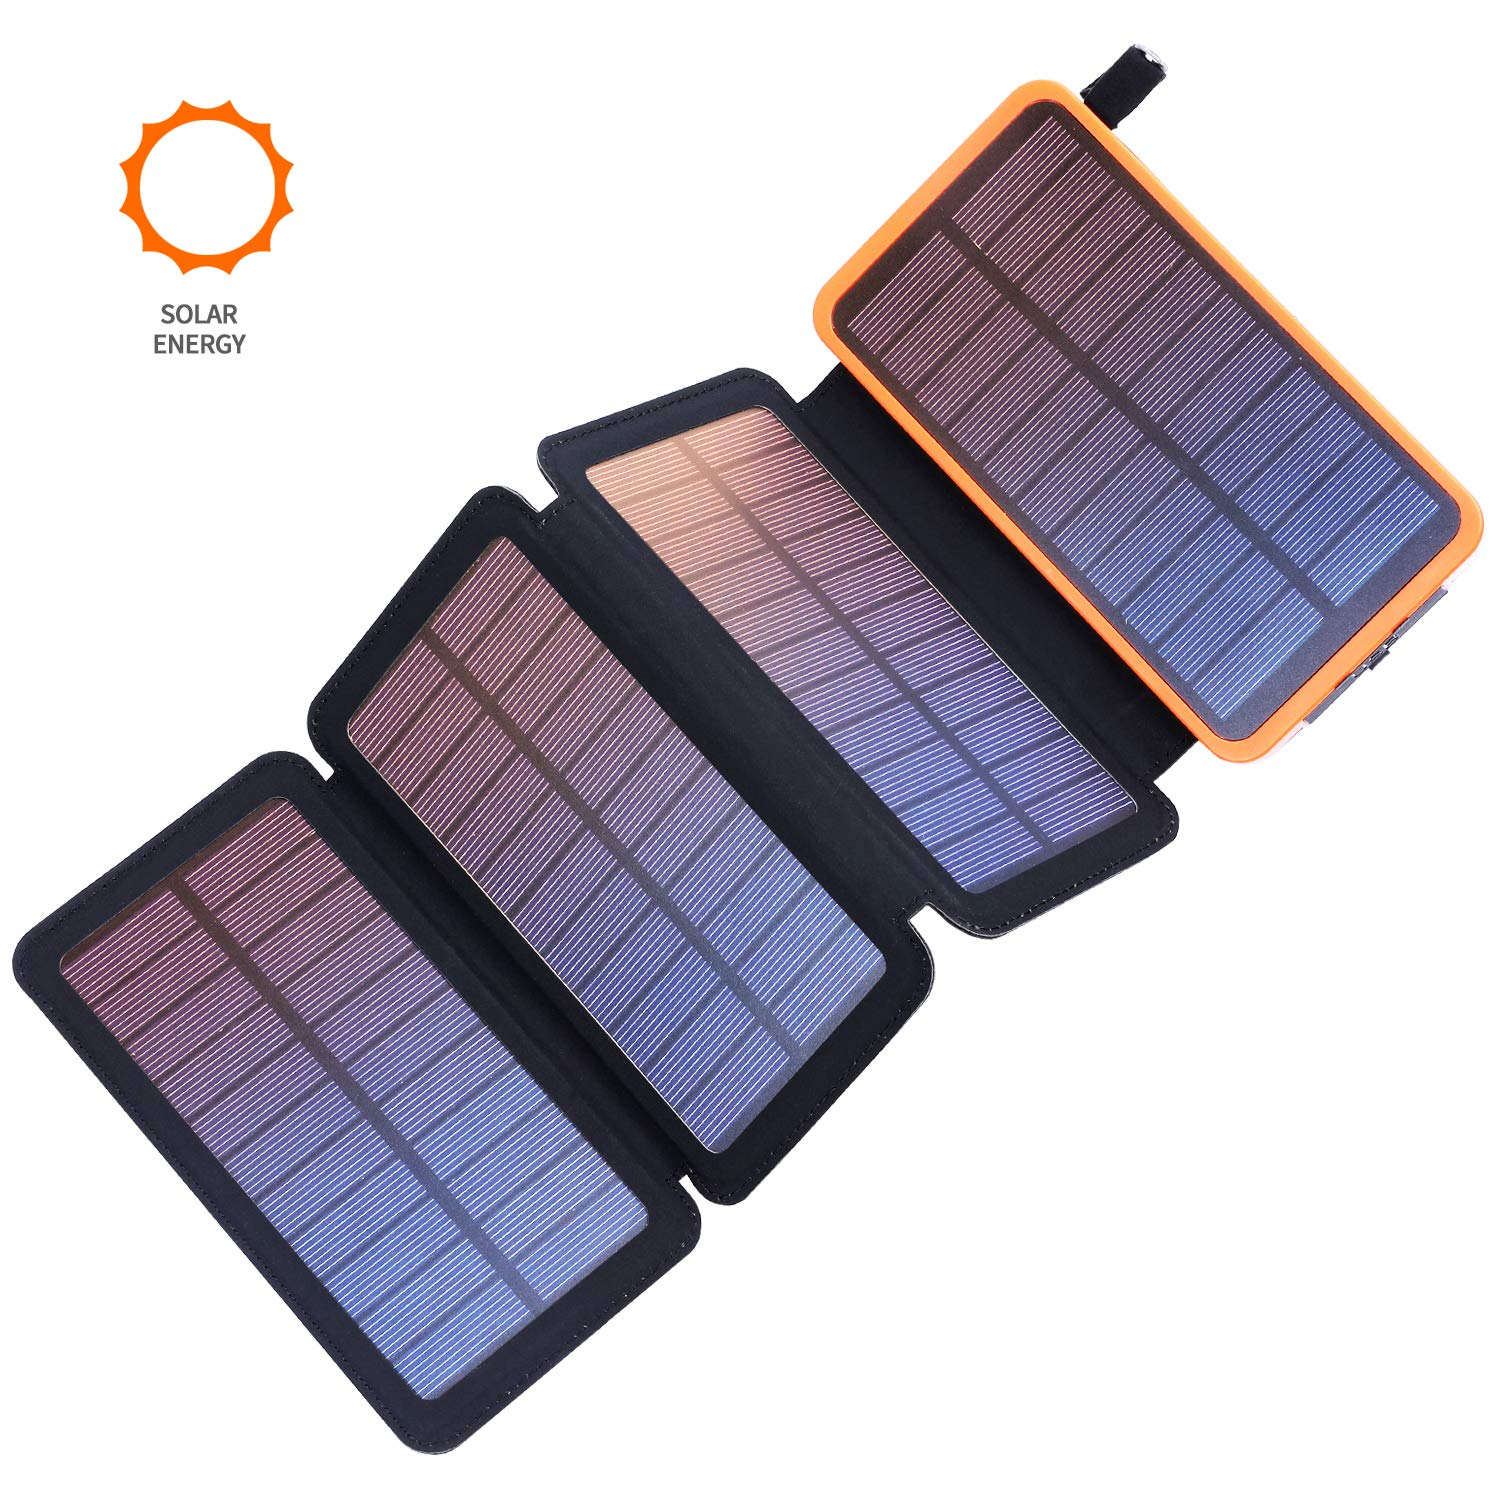 Benfiss Solar Charger 25000mAh, Portable Solar Power Bank with 4 Solar Panels and Fast Charge External Battery Pack with Dual 2.1A Outputs USB Port Compatible for Most Smartphones Tablets and More by Benfiss